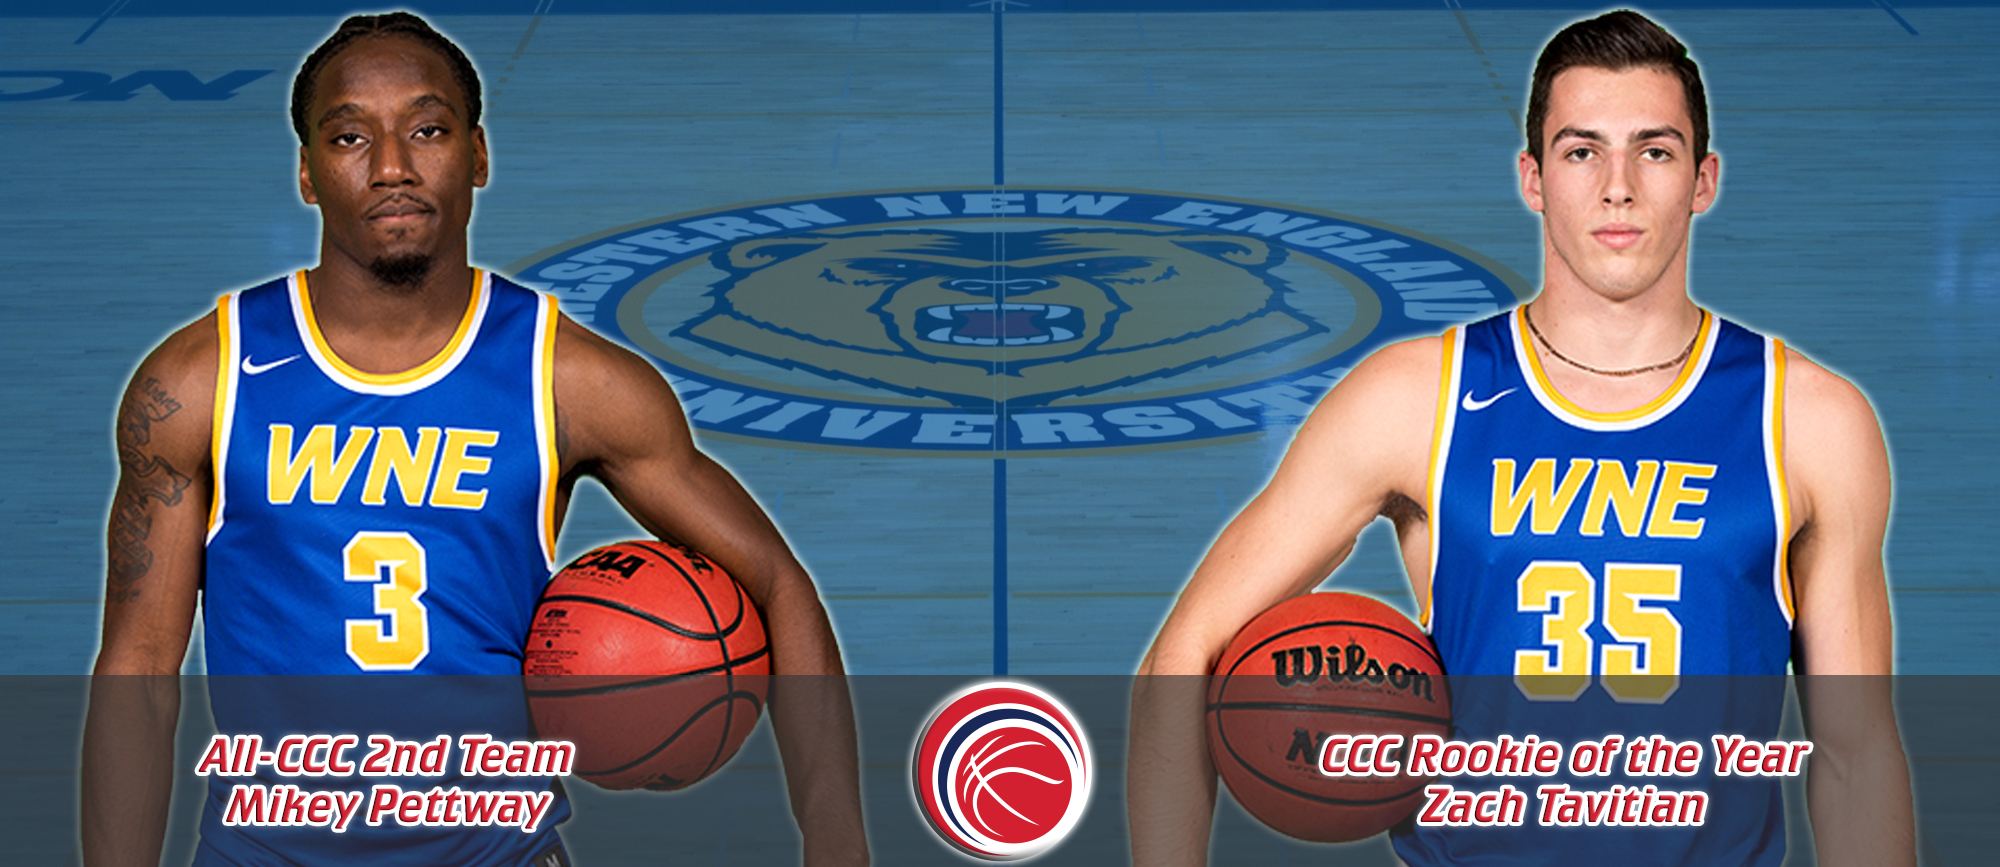 Pettway Earns All-CCC Second Team Honors, Tavitian Named CCC Rookie of the Year